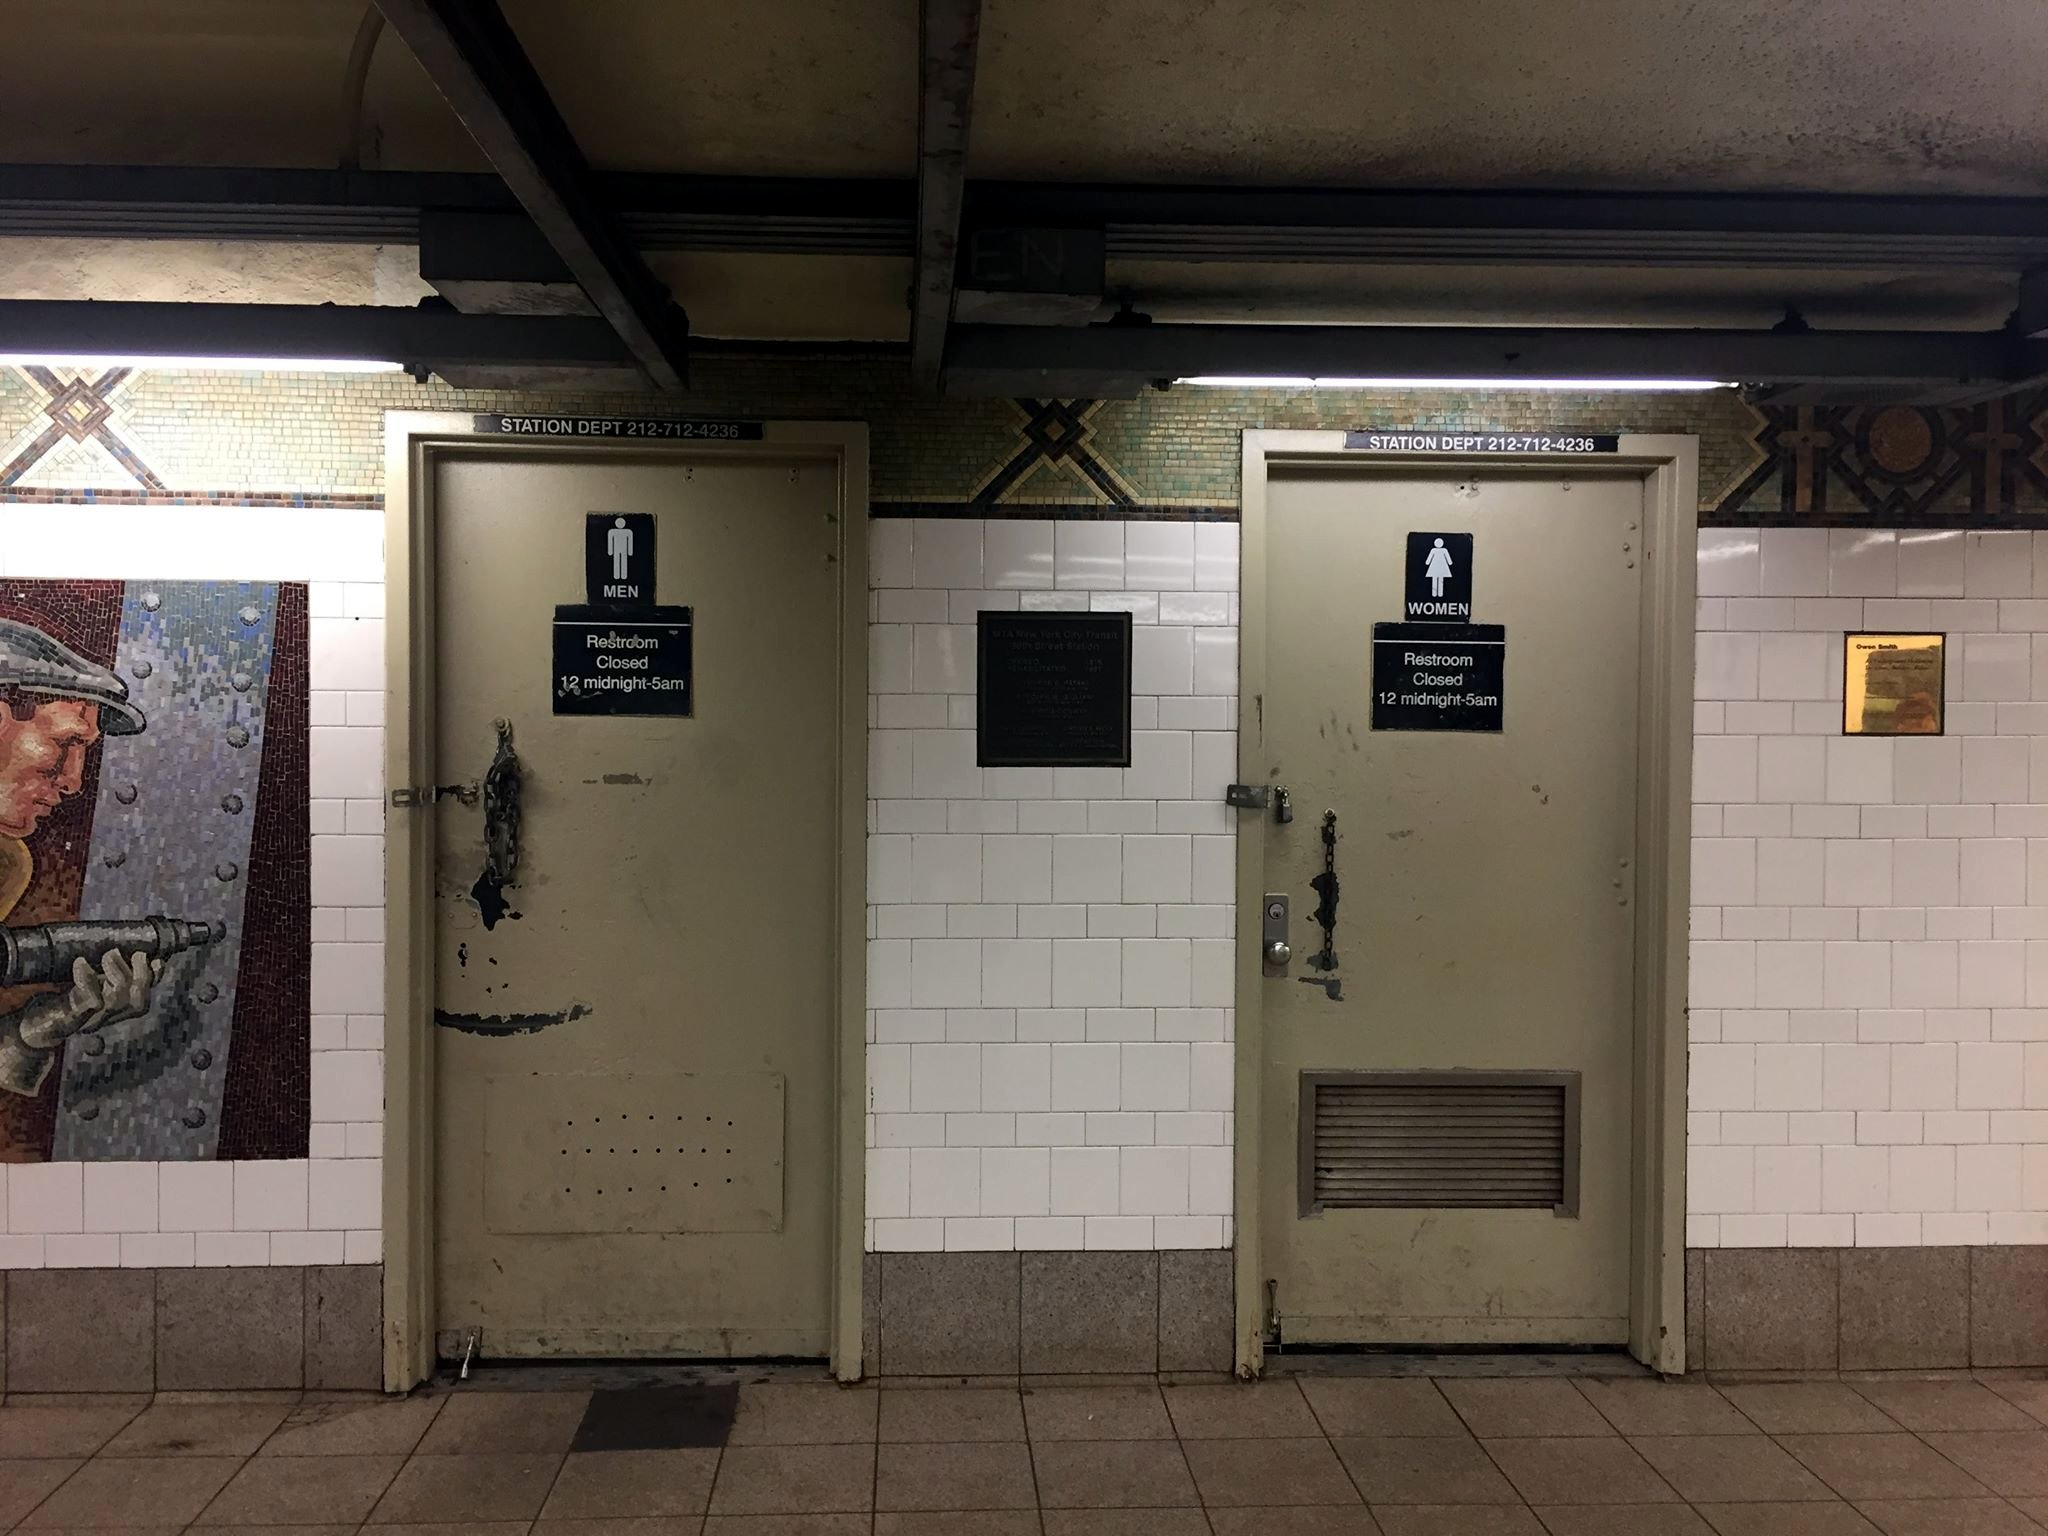 subwaybathroom-photos-slide-79U9-superJumbo.jpg